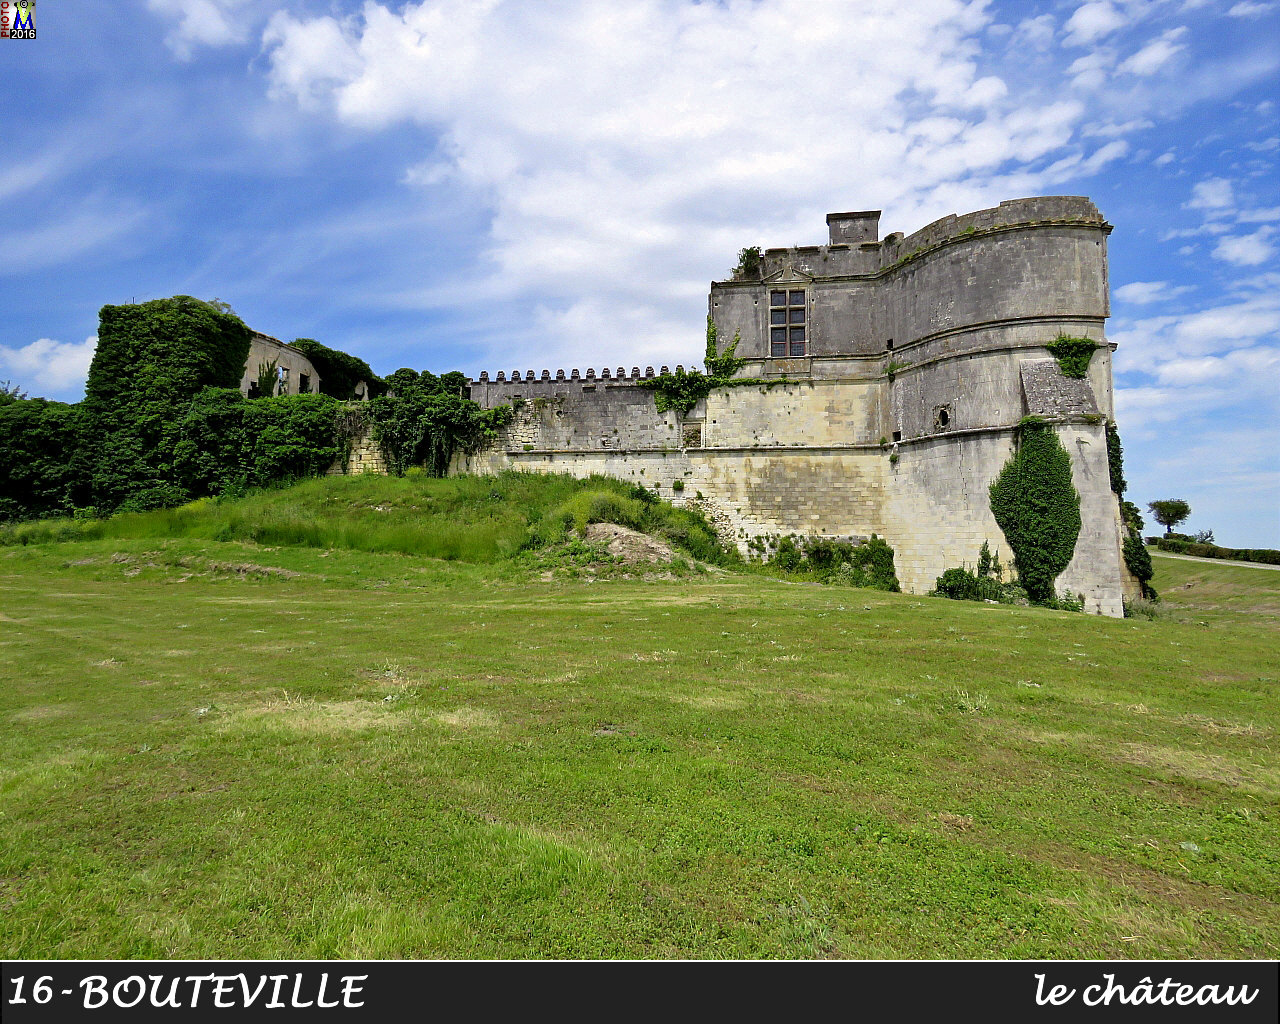 16BOUTEVILLE_chateau_1002.jpg